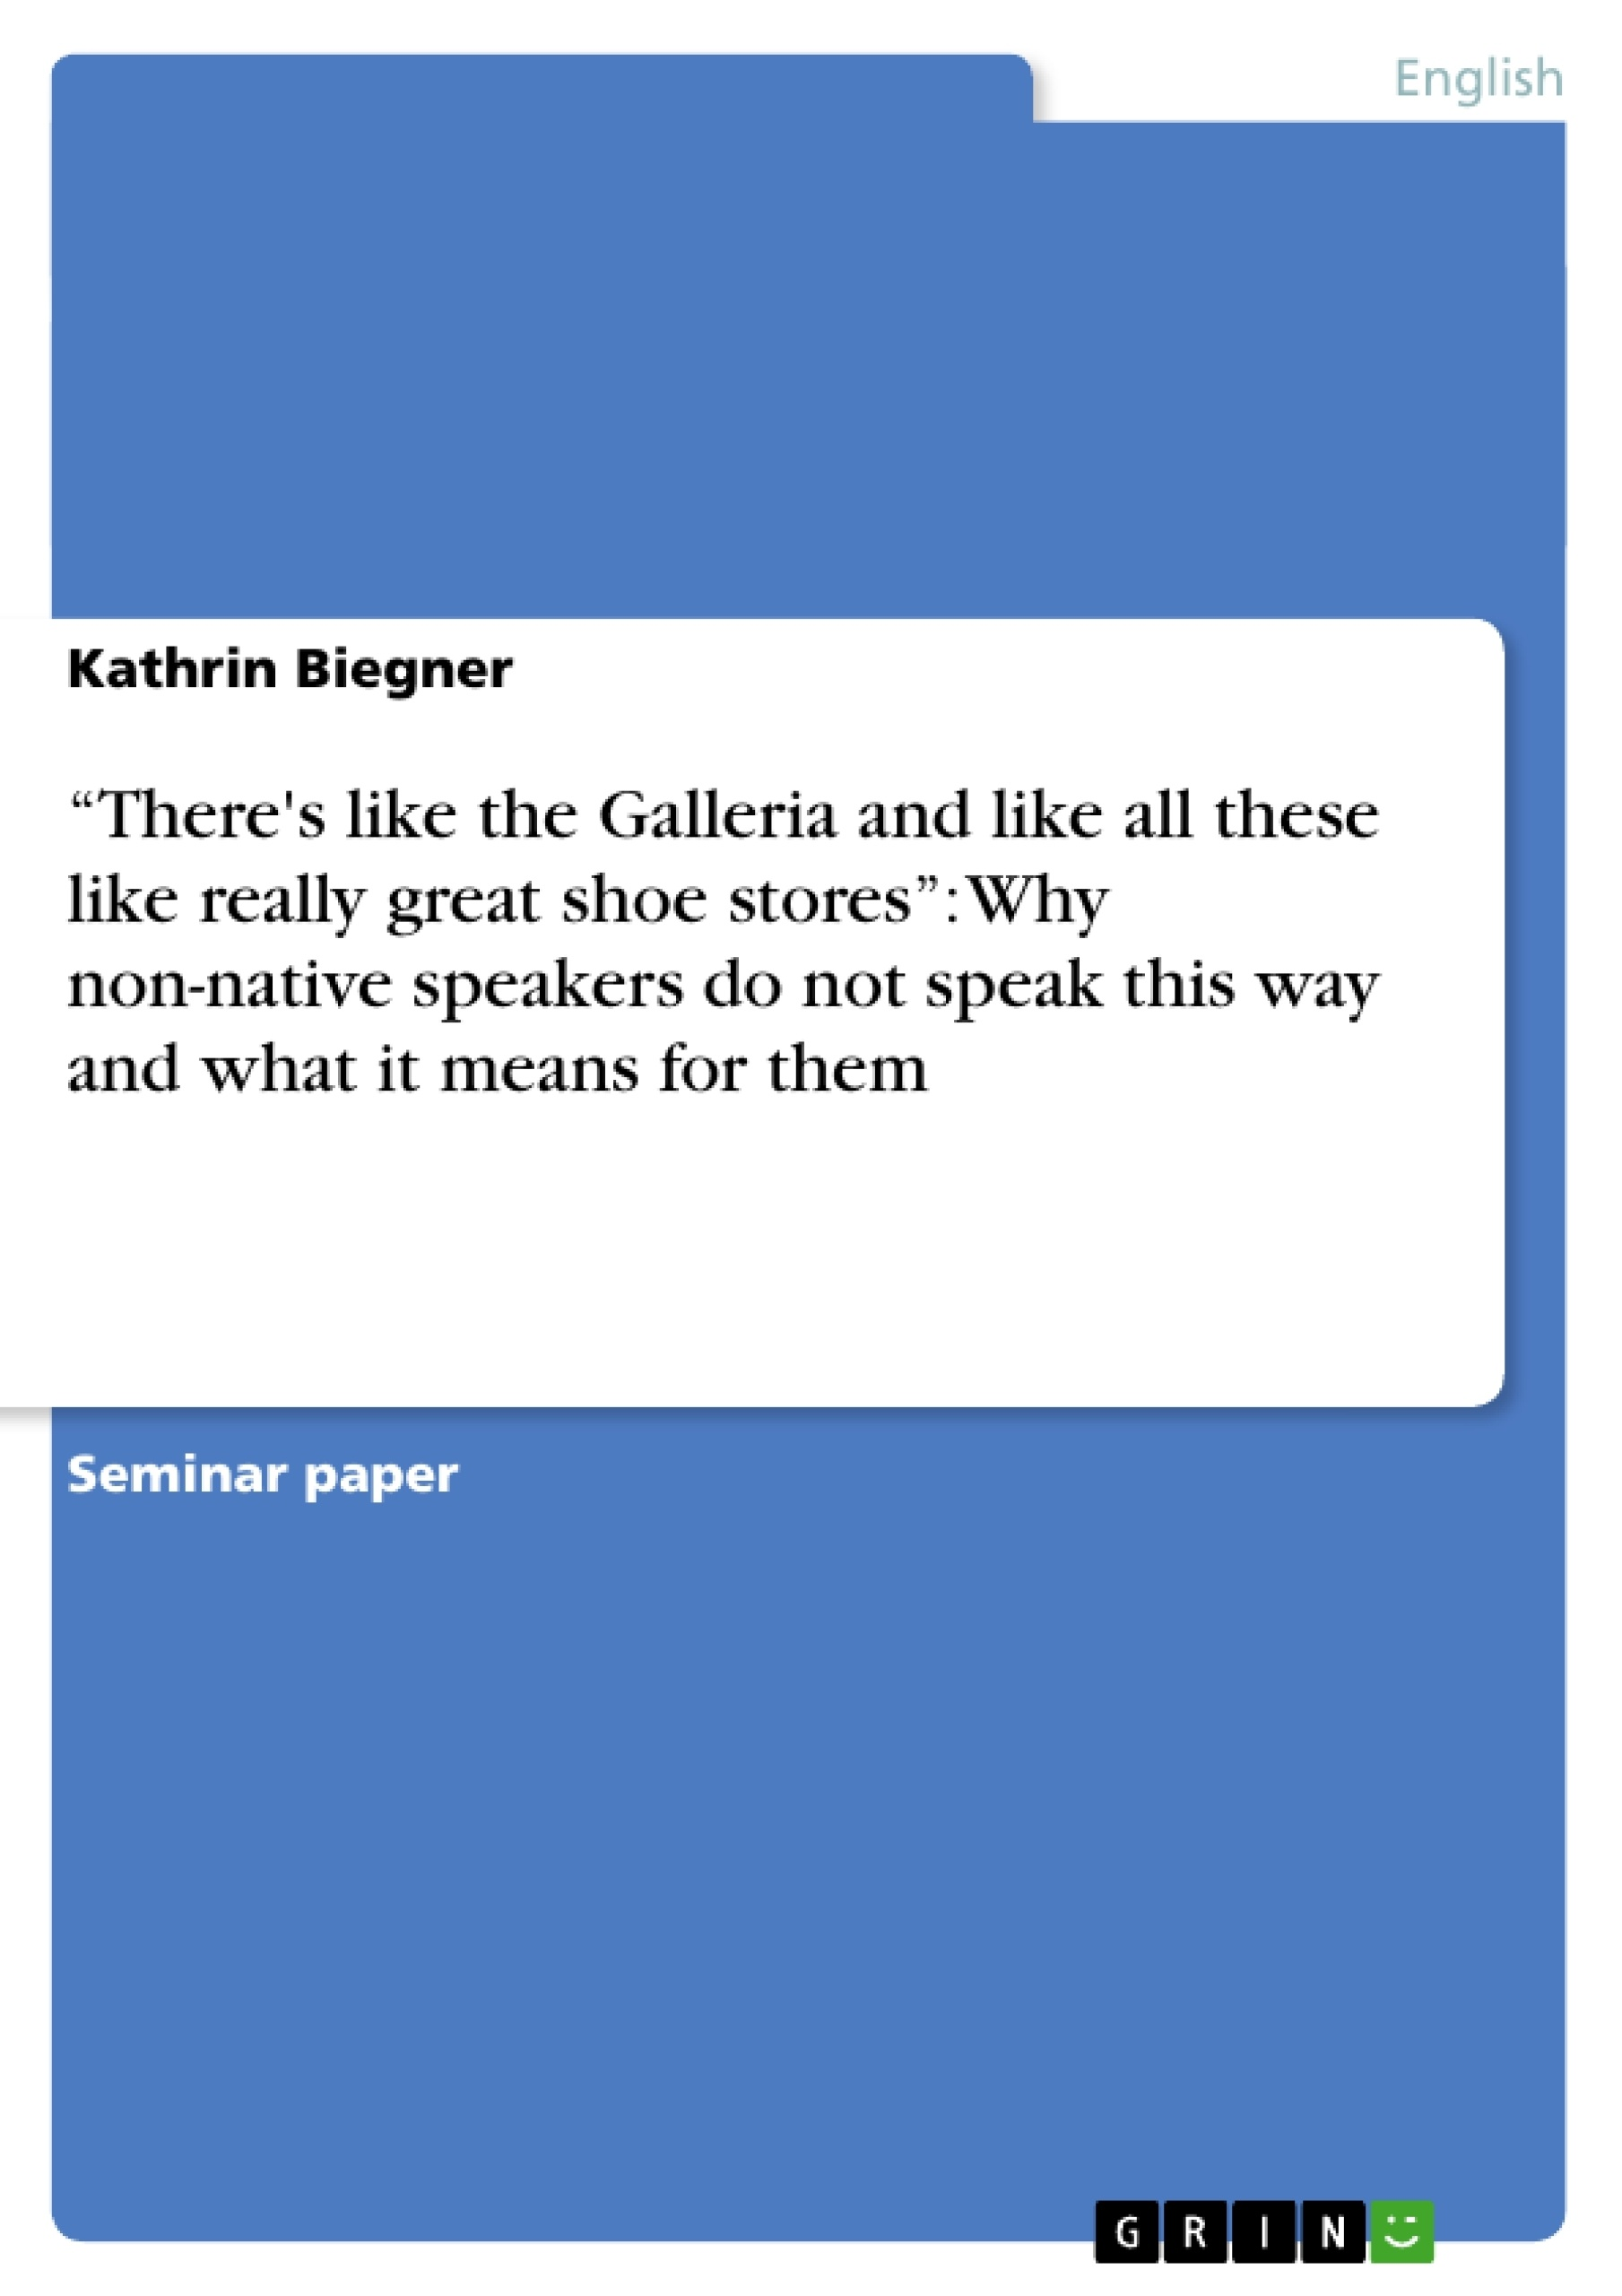 """Title: """"There's like the Galleria and like all these like really great shoe stores"""": Why non-native speakers do not speak this way and what it means for them"""